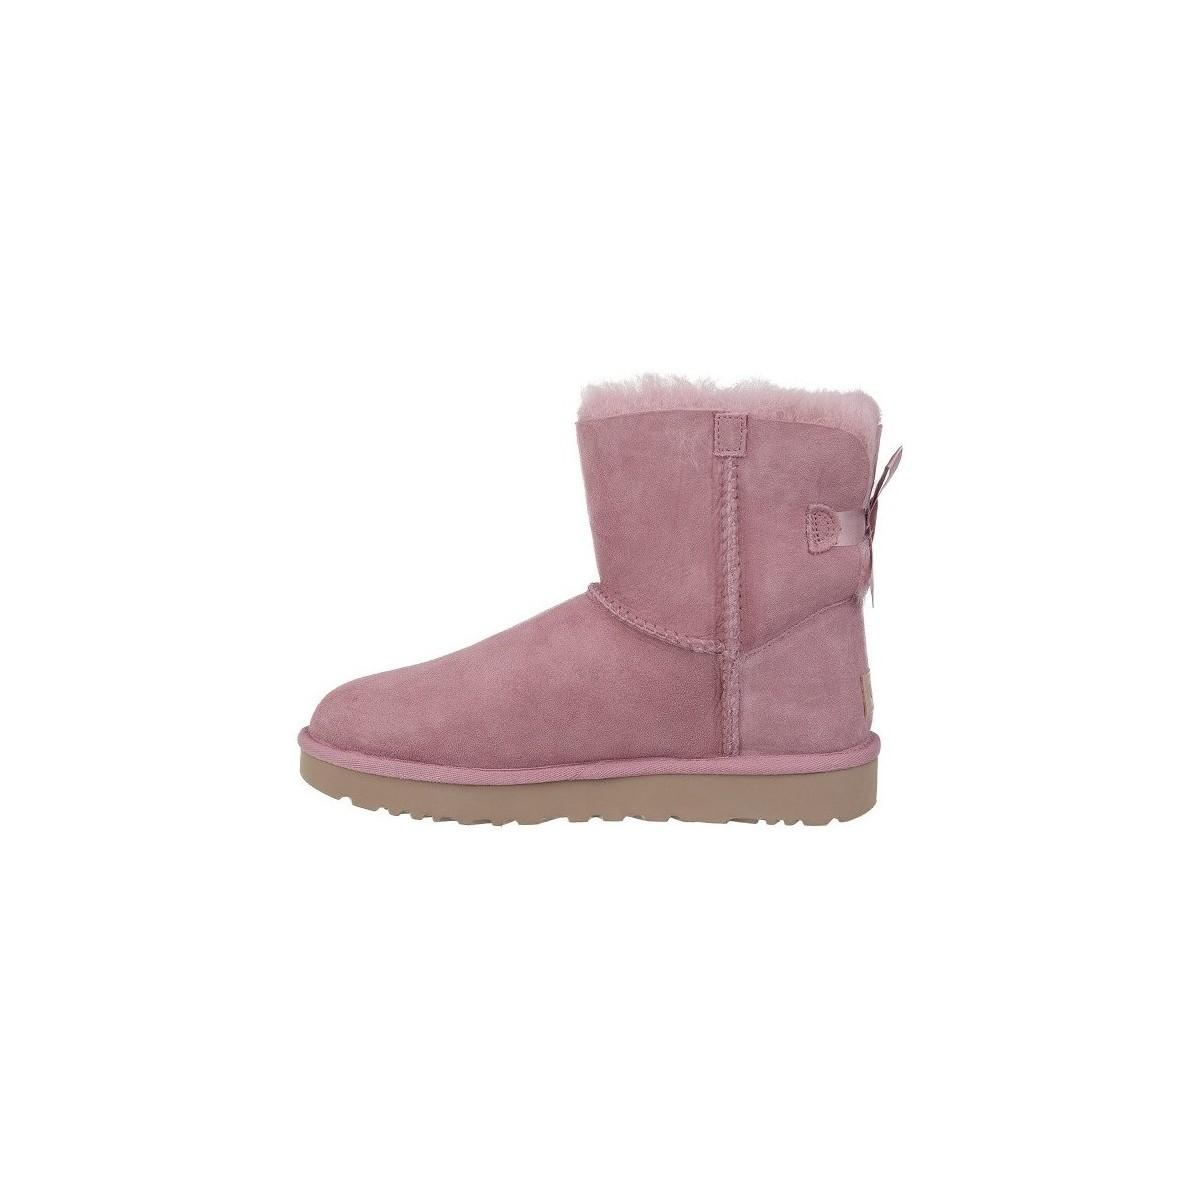 b53fbd7c3d5 UGG Mini Bailey Bow Ii Women's Snow Boots In Pink in Pink - Lyst